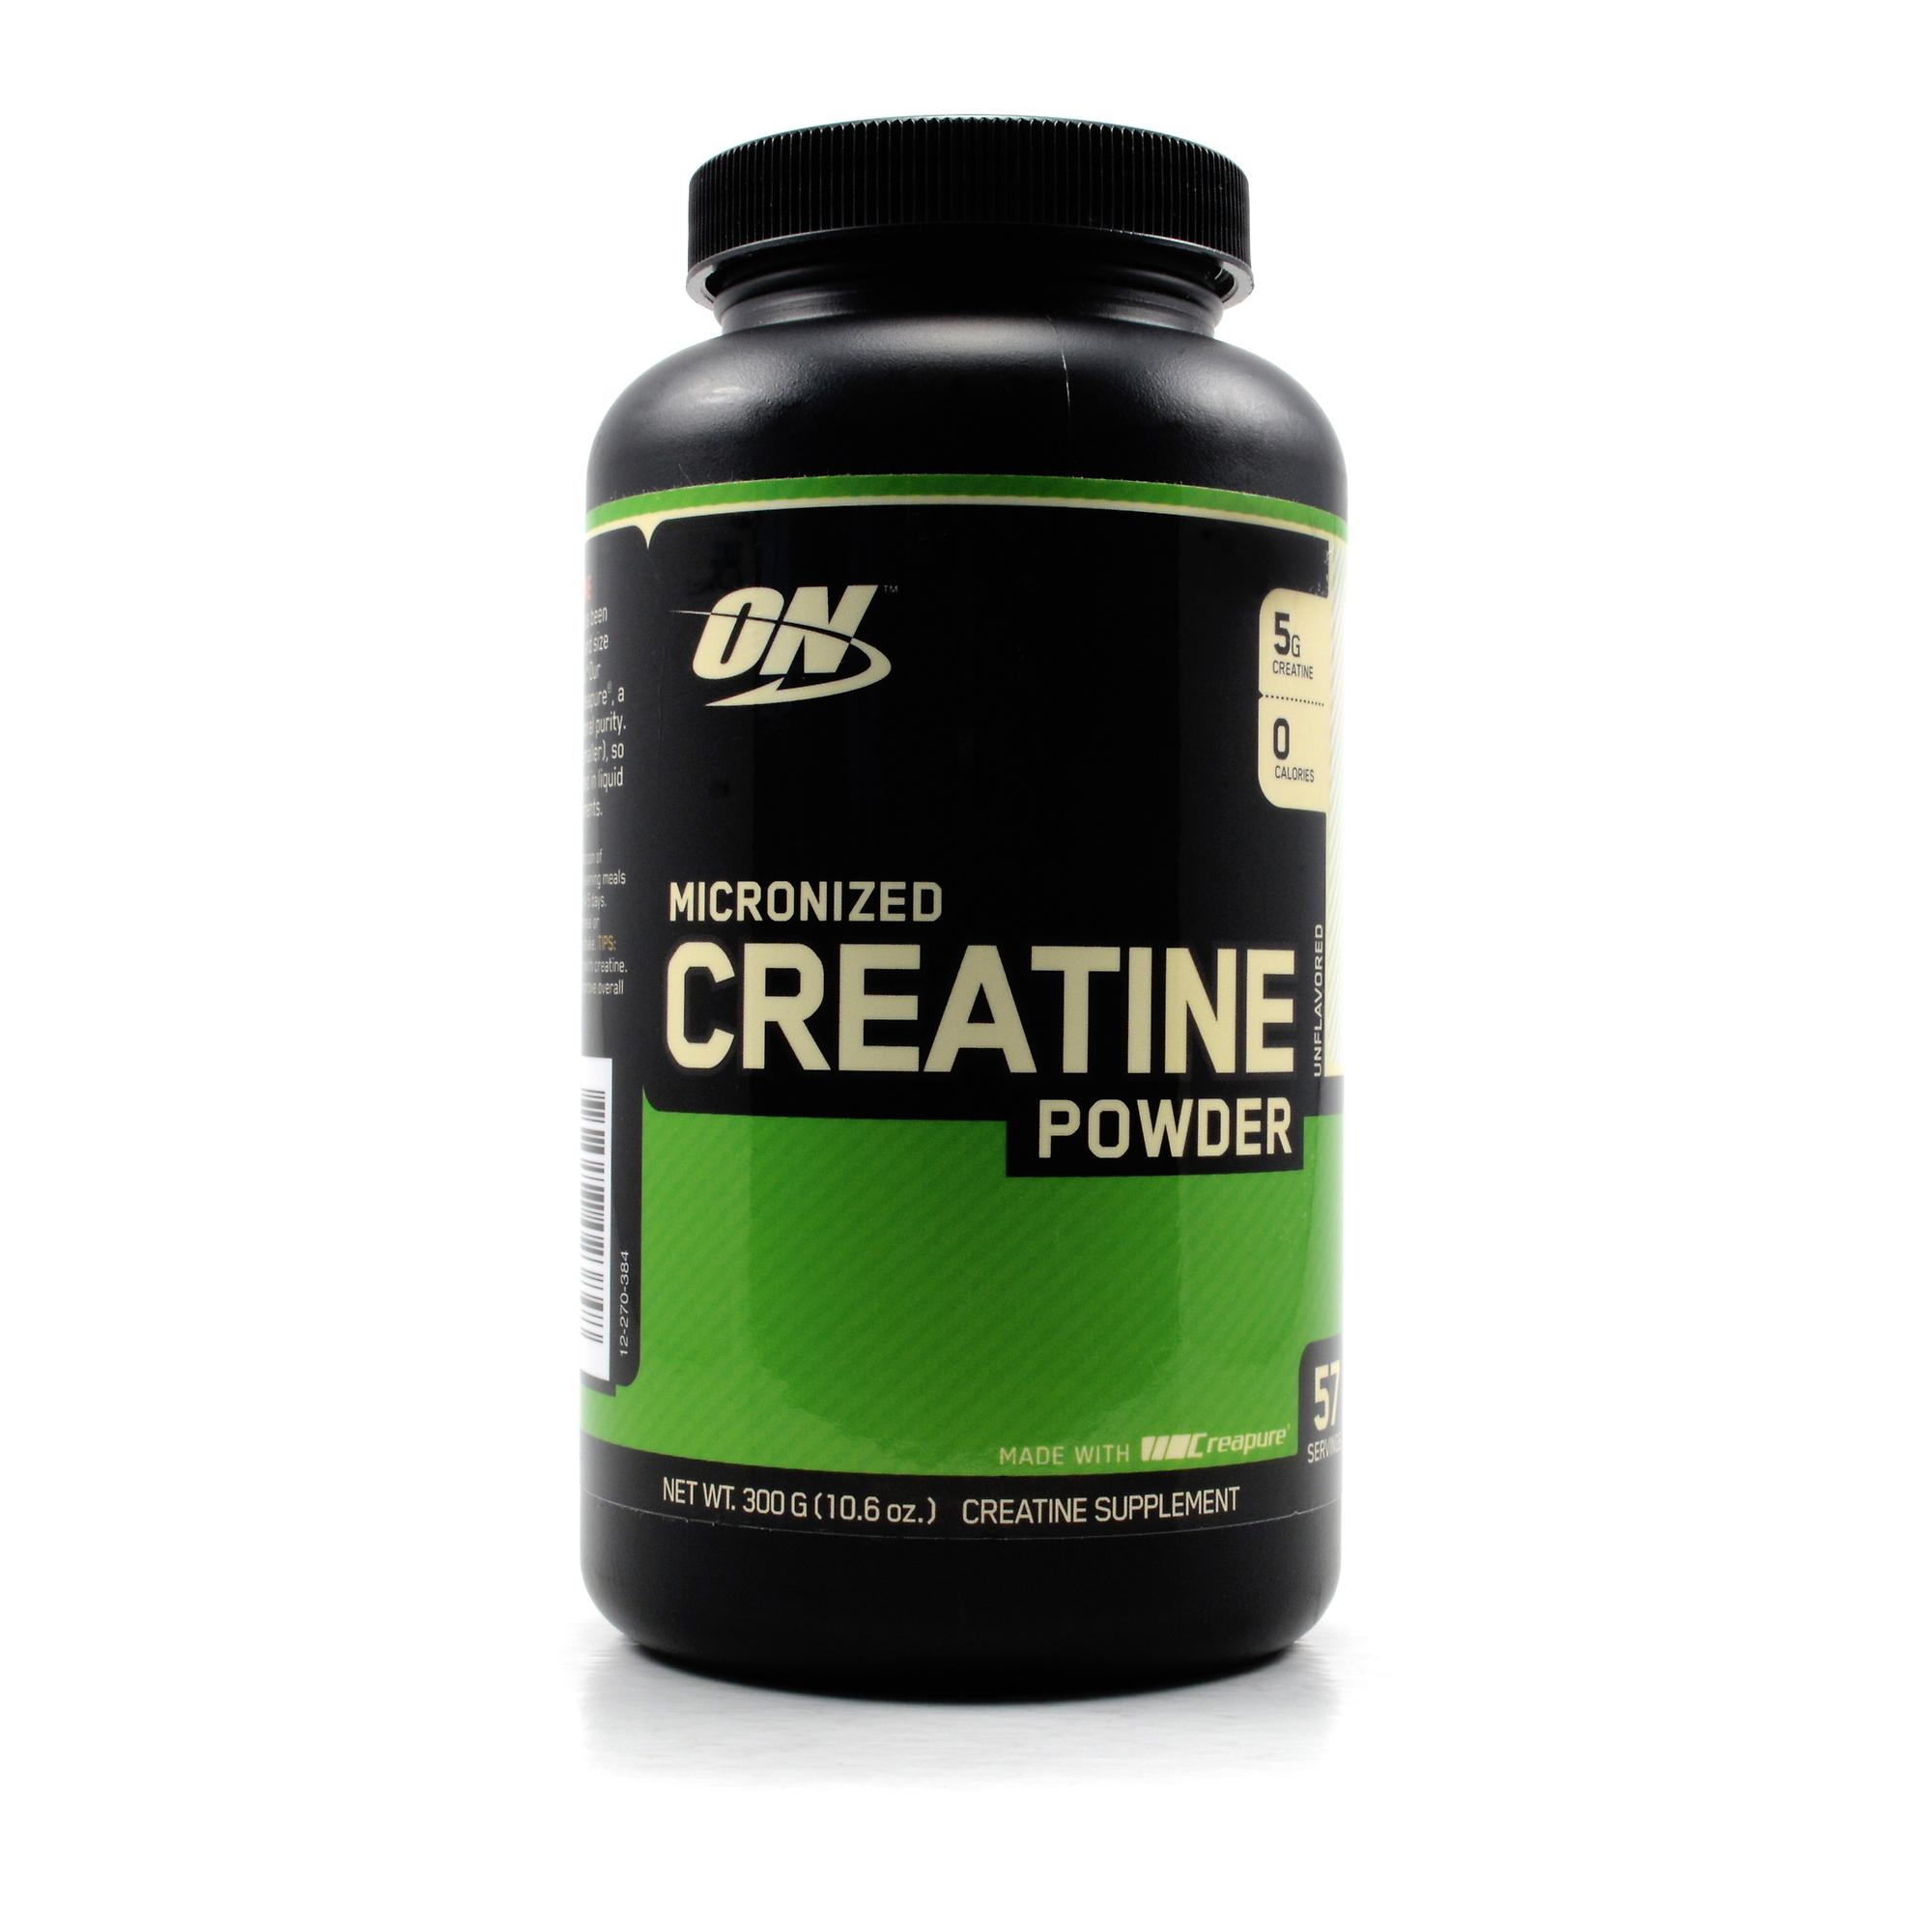 Optimum nutrition creatine monohydrate review